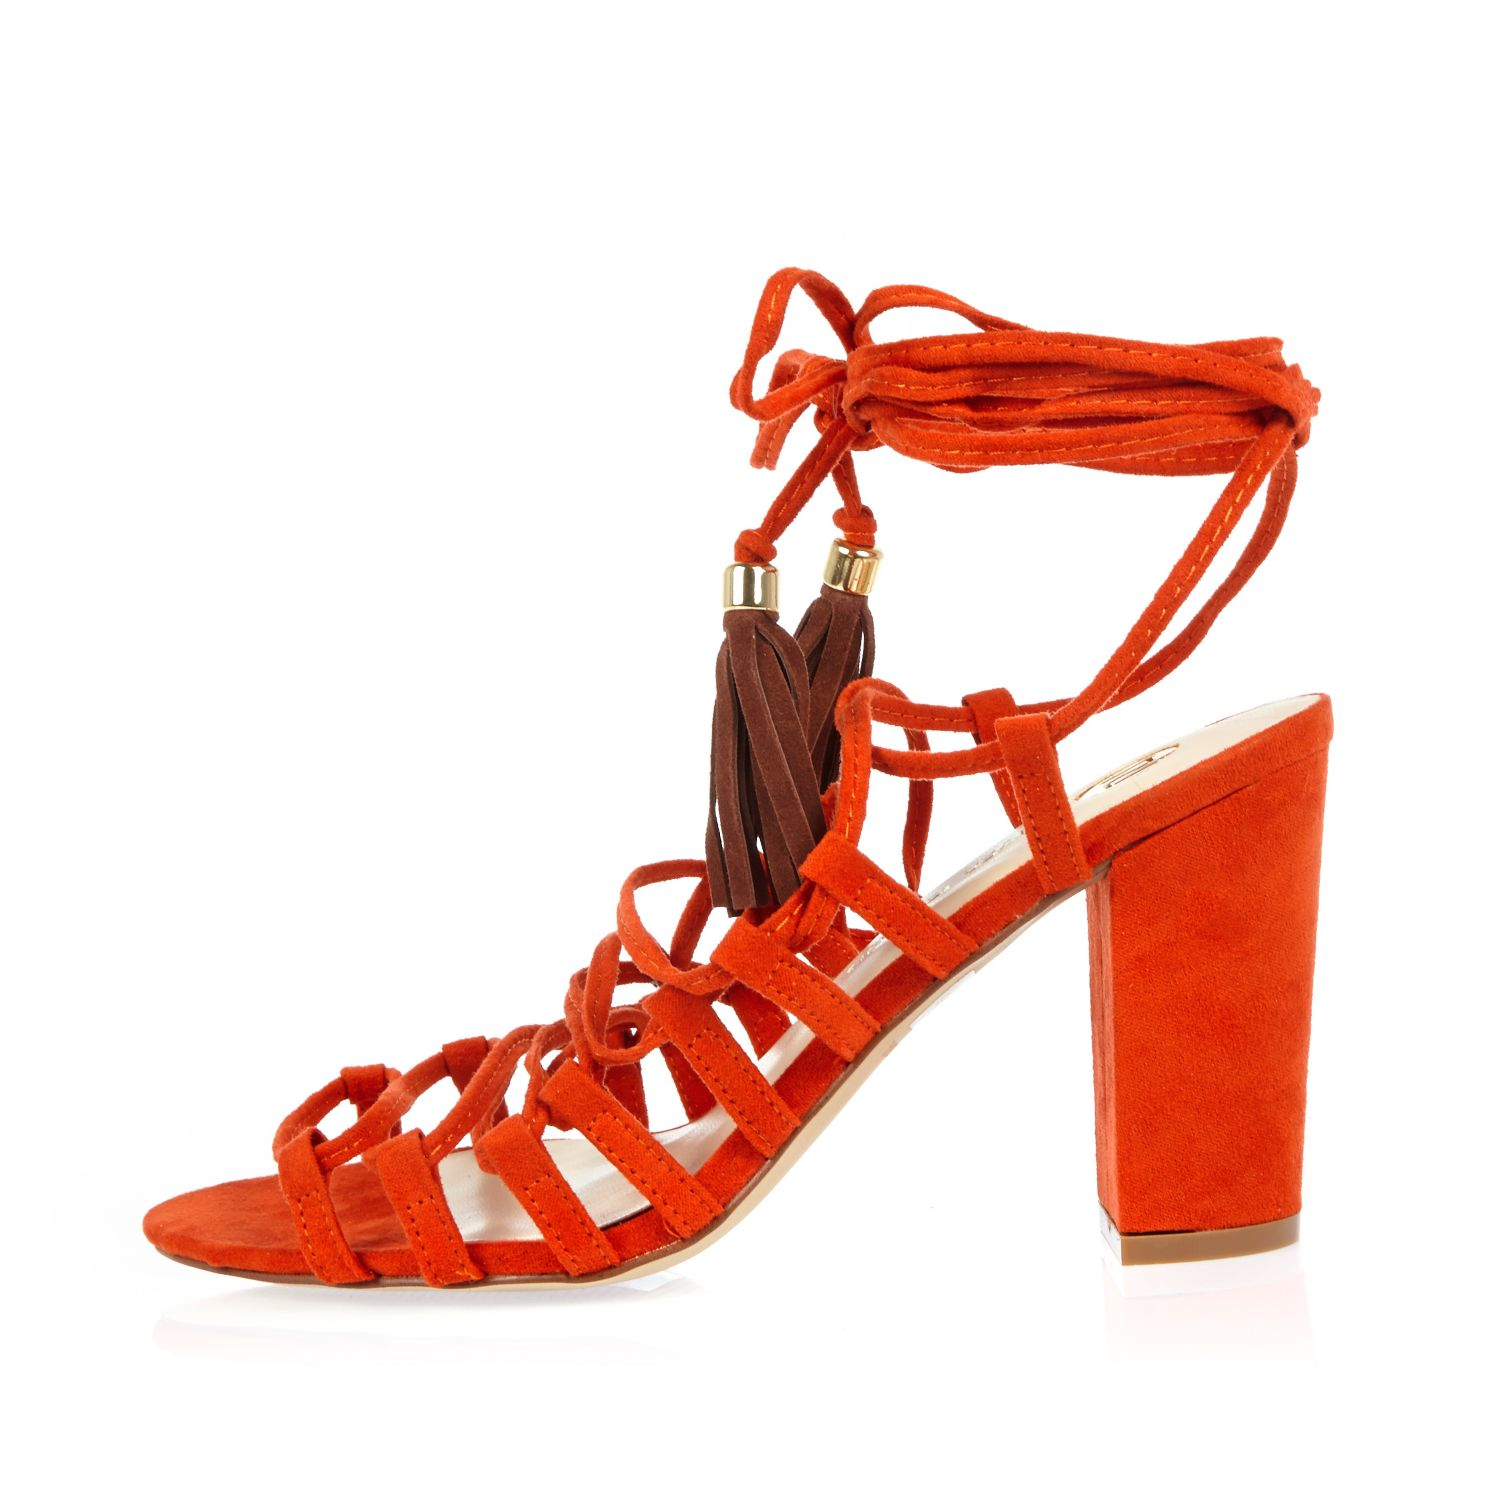 24c66c07046 Lyst - River Island Orange Lace-up Block Heel Sandals in Orange